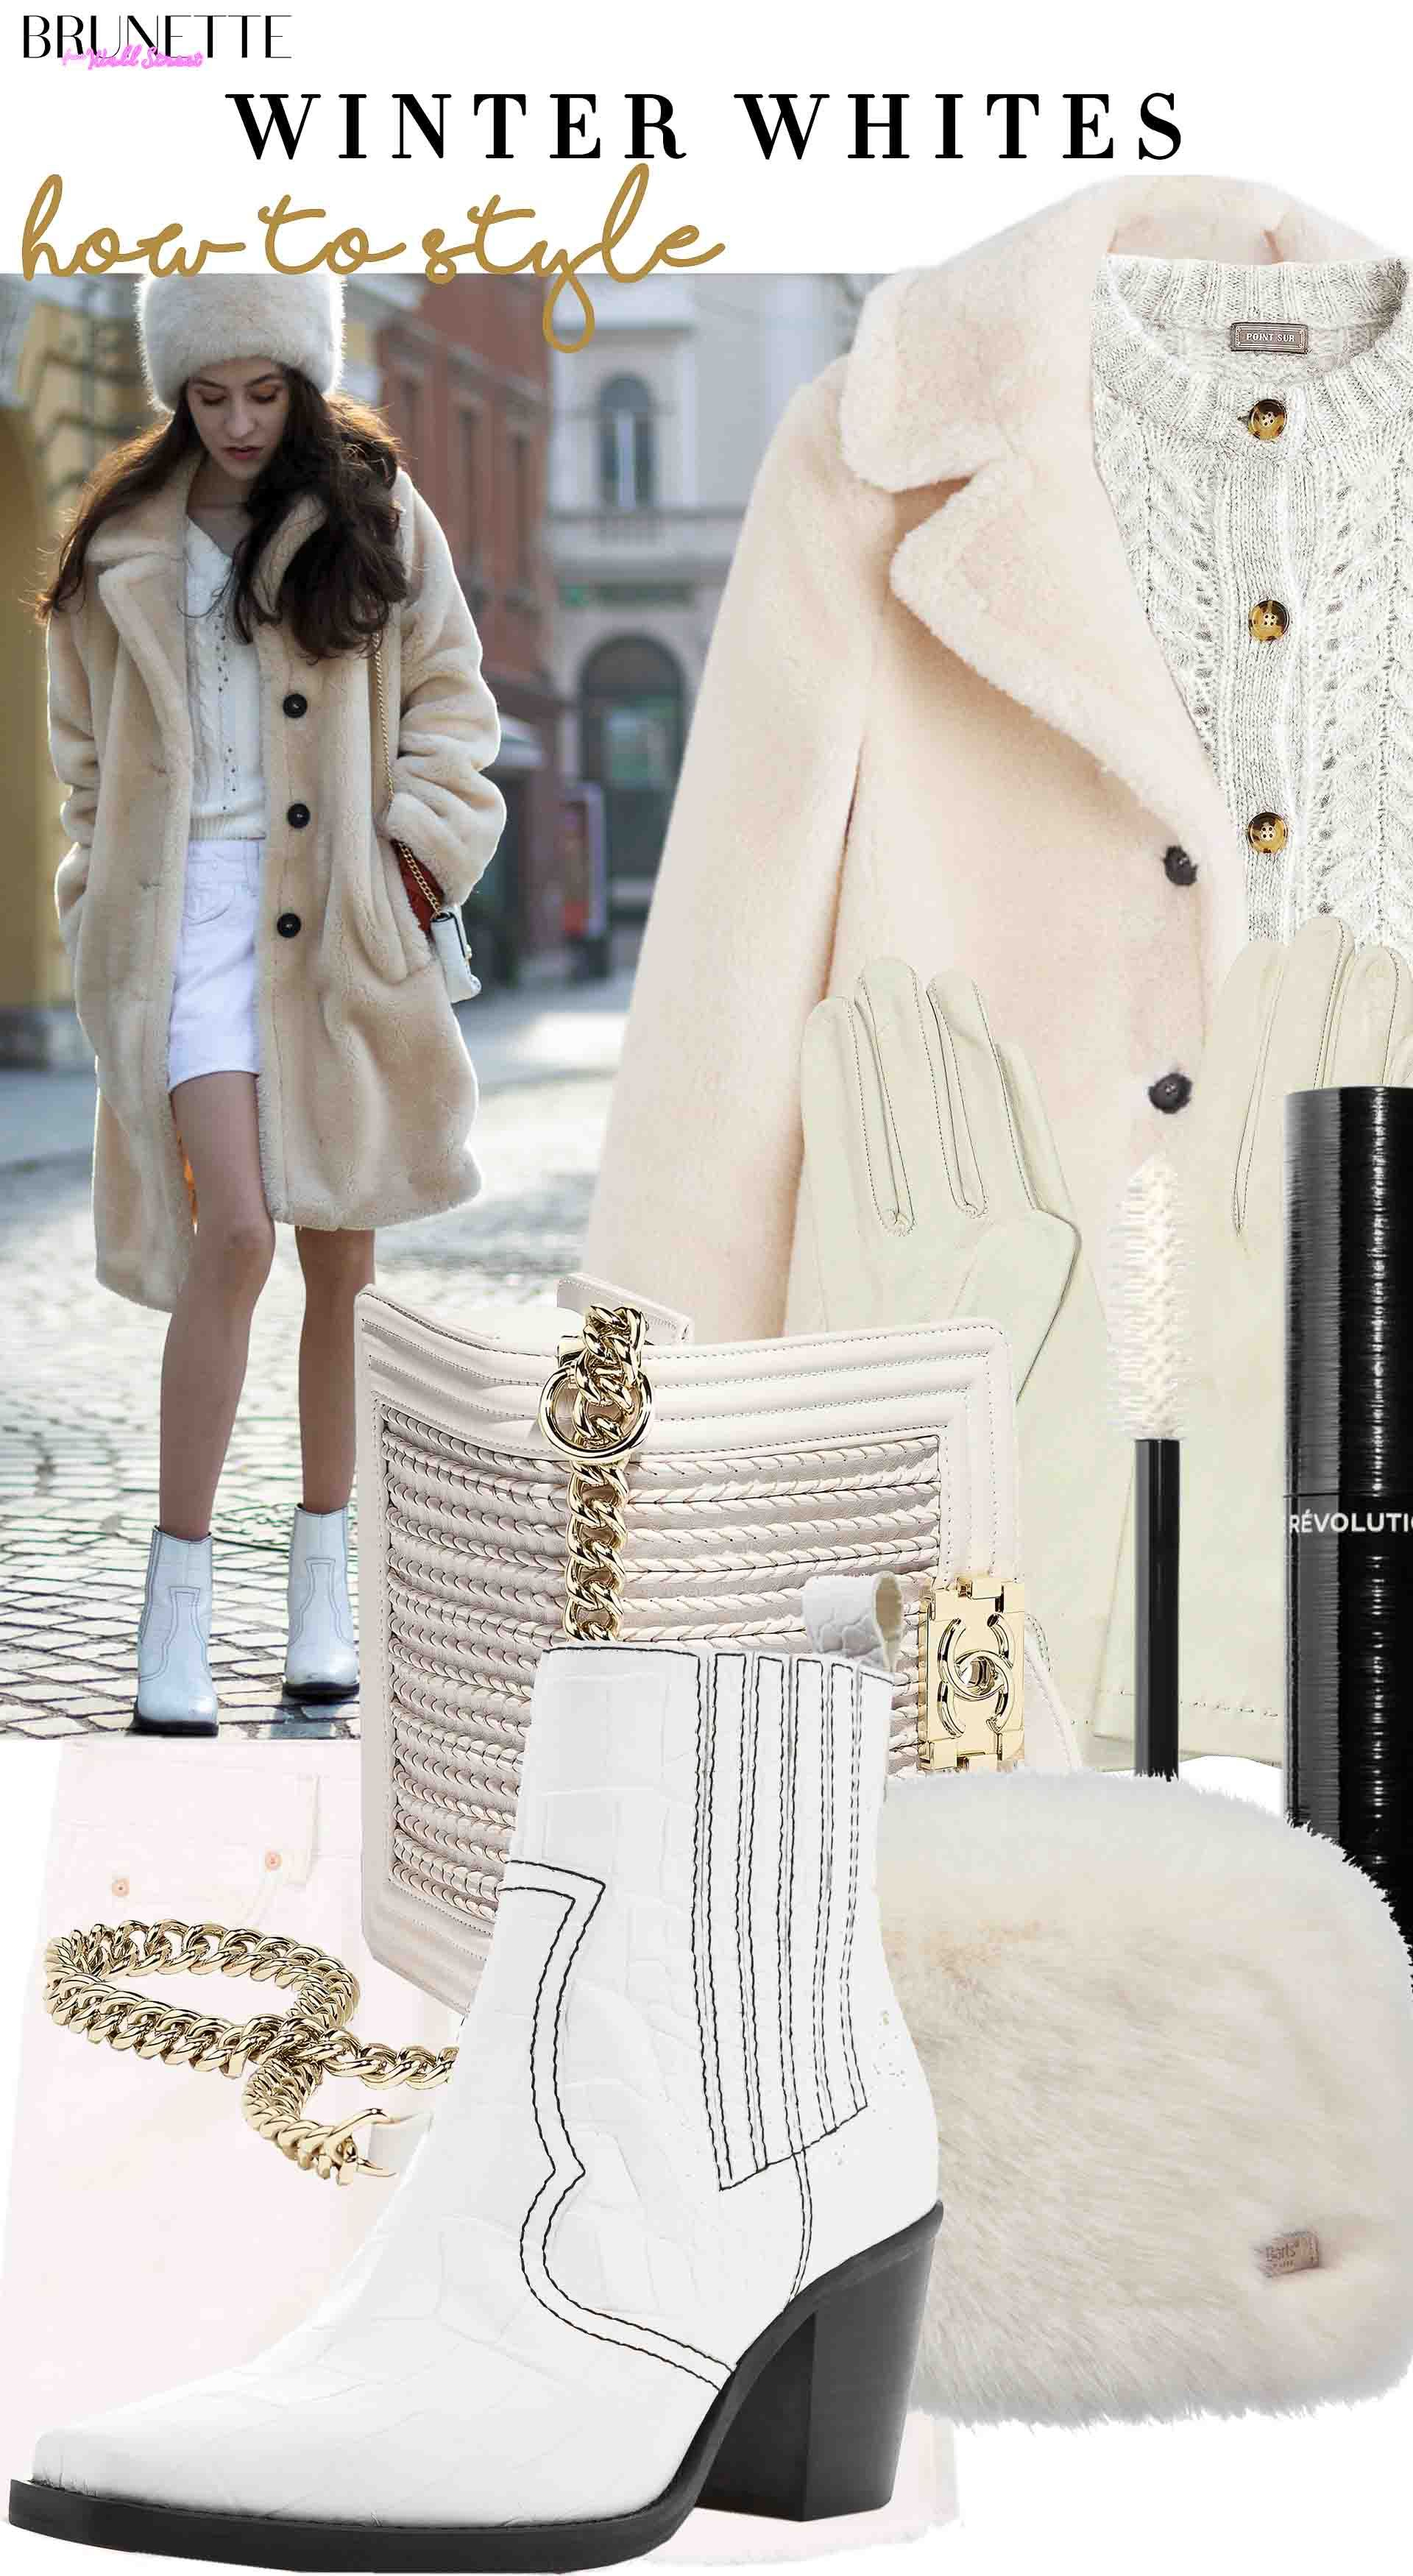 This Is The Most Fashionable White Winter Outfit And No With No White Jeans This Time Casual Winter Outfits Fashion Outfits [ 3500 x 1920 Pixel ]